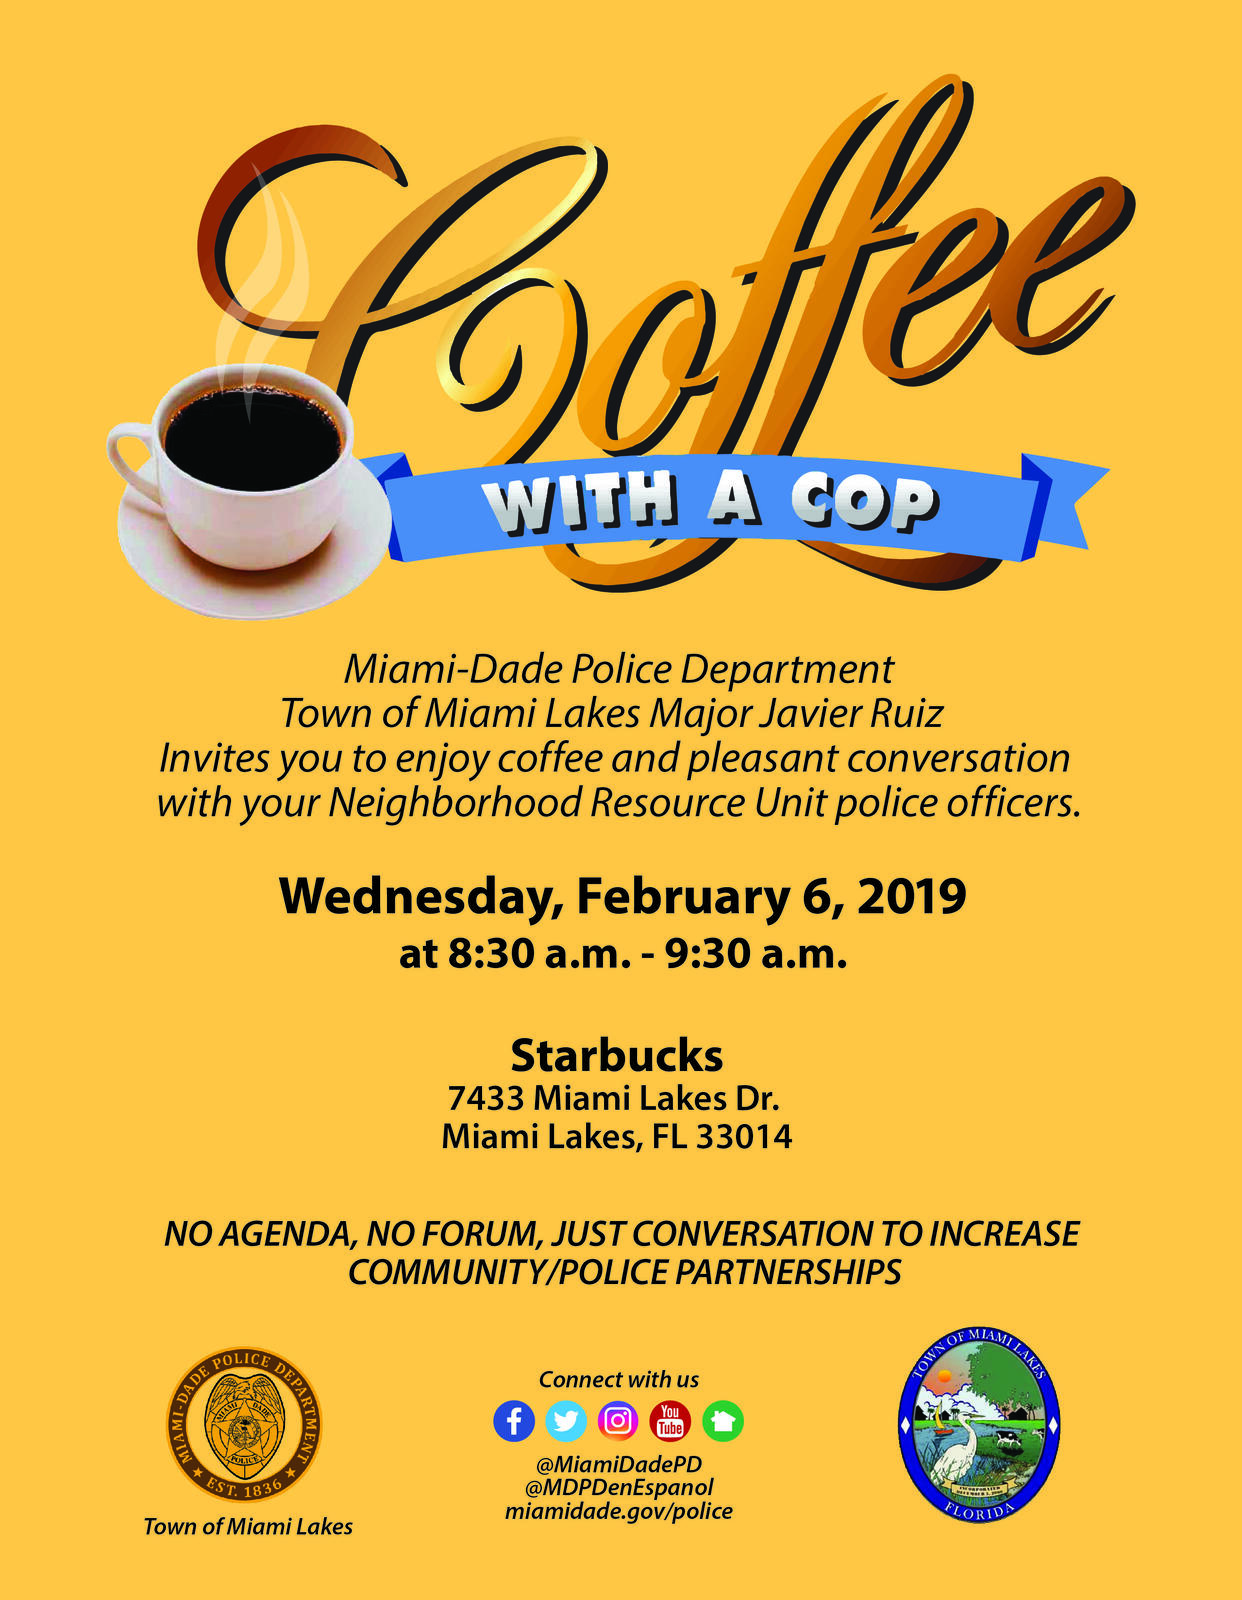 Coffee with a Cop (Miami-Dade Police Department) &mdash